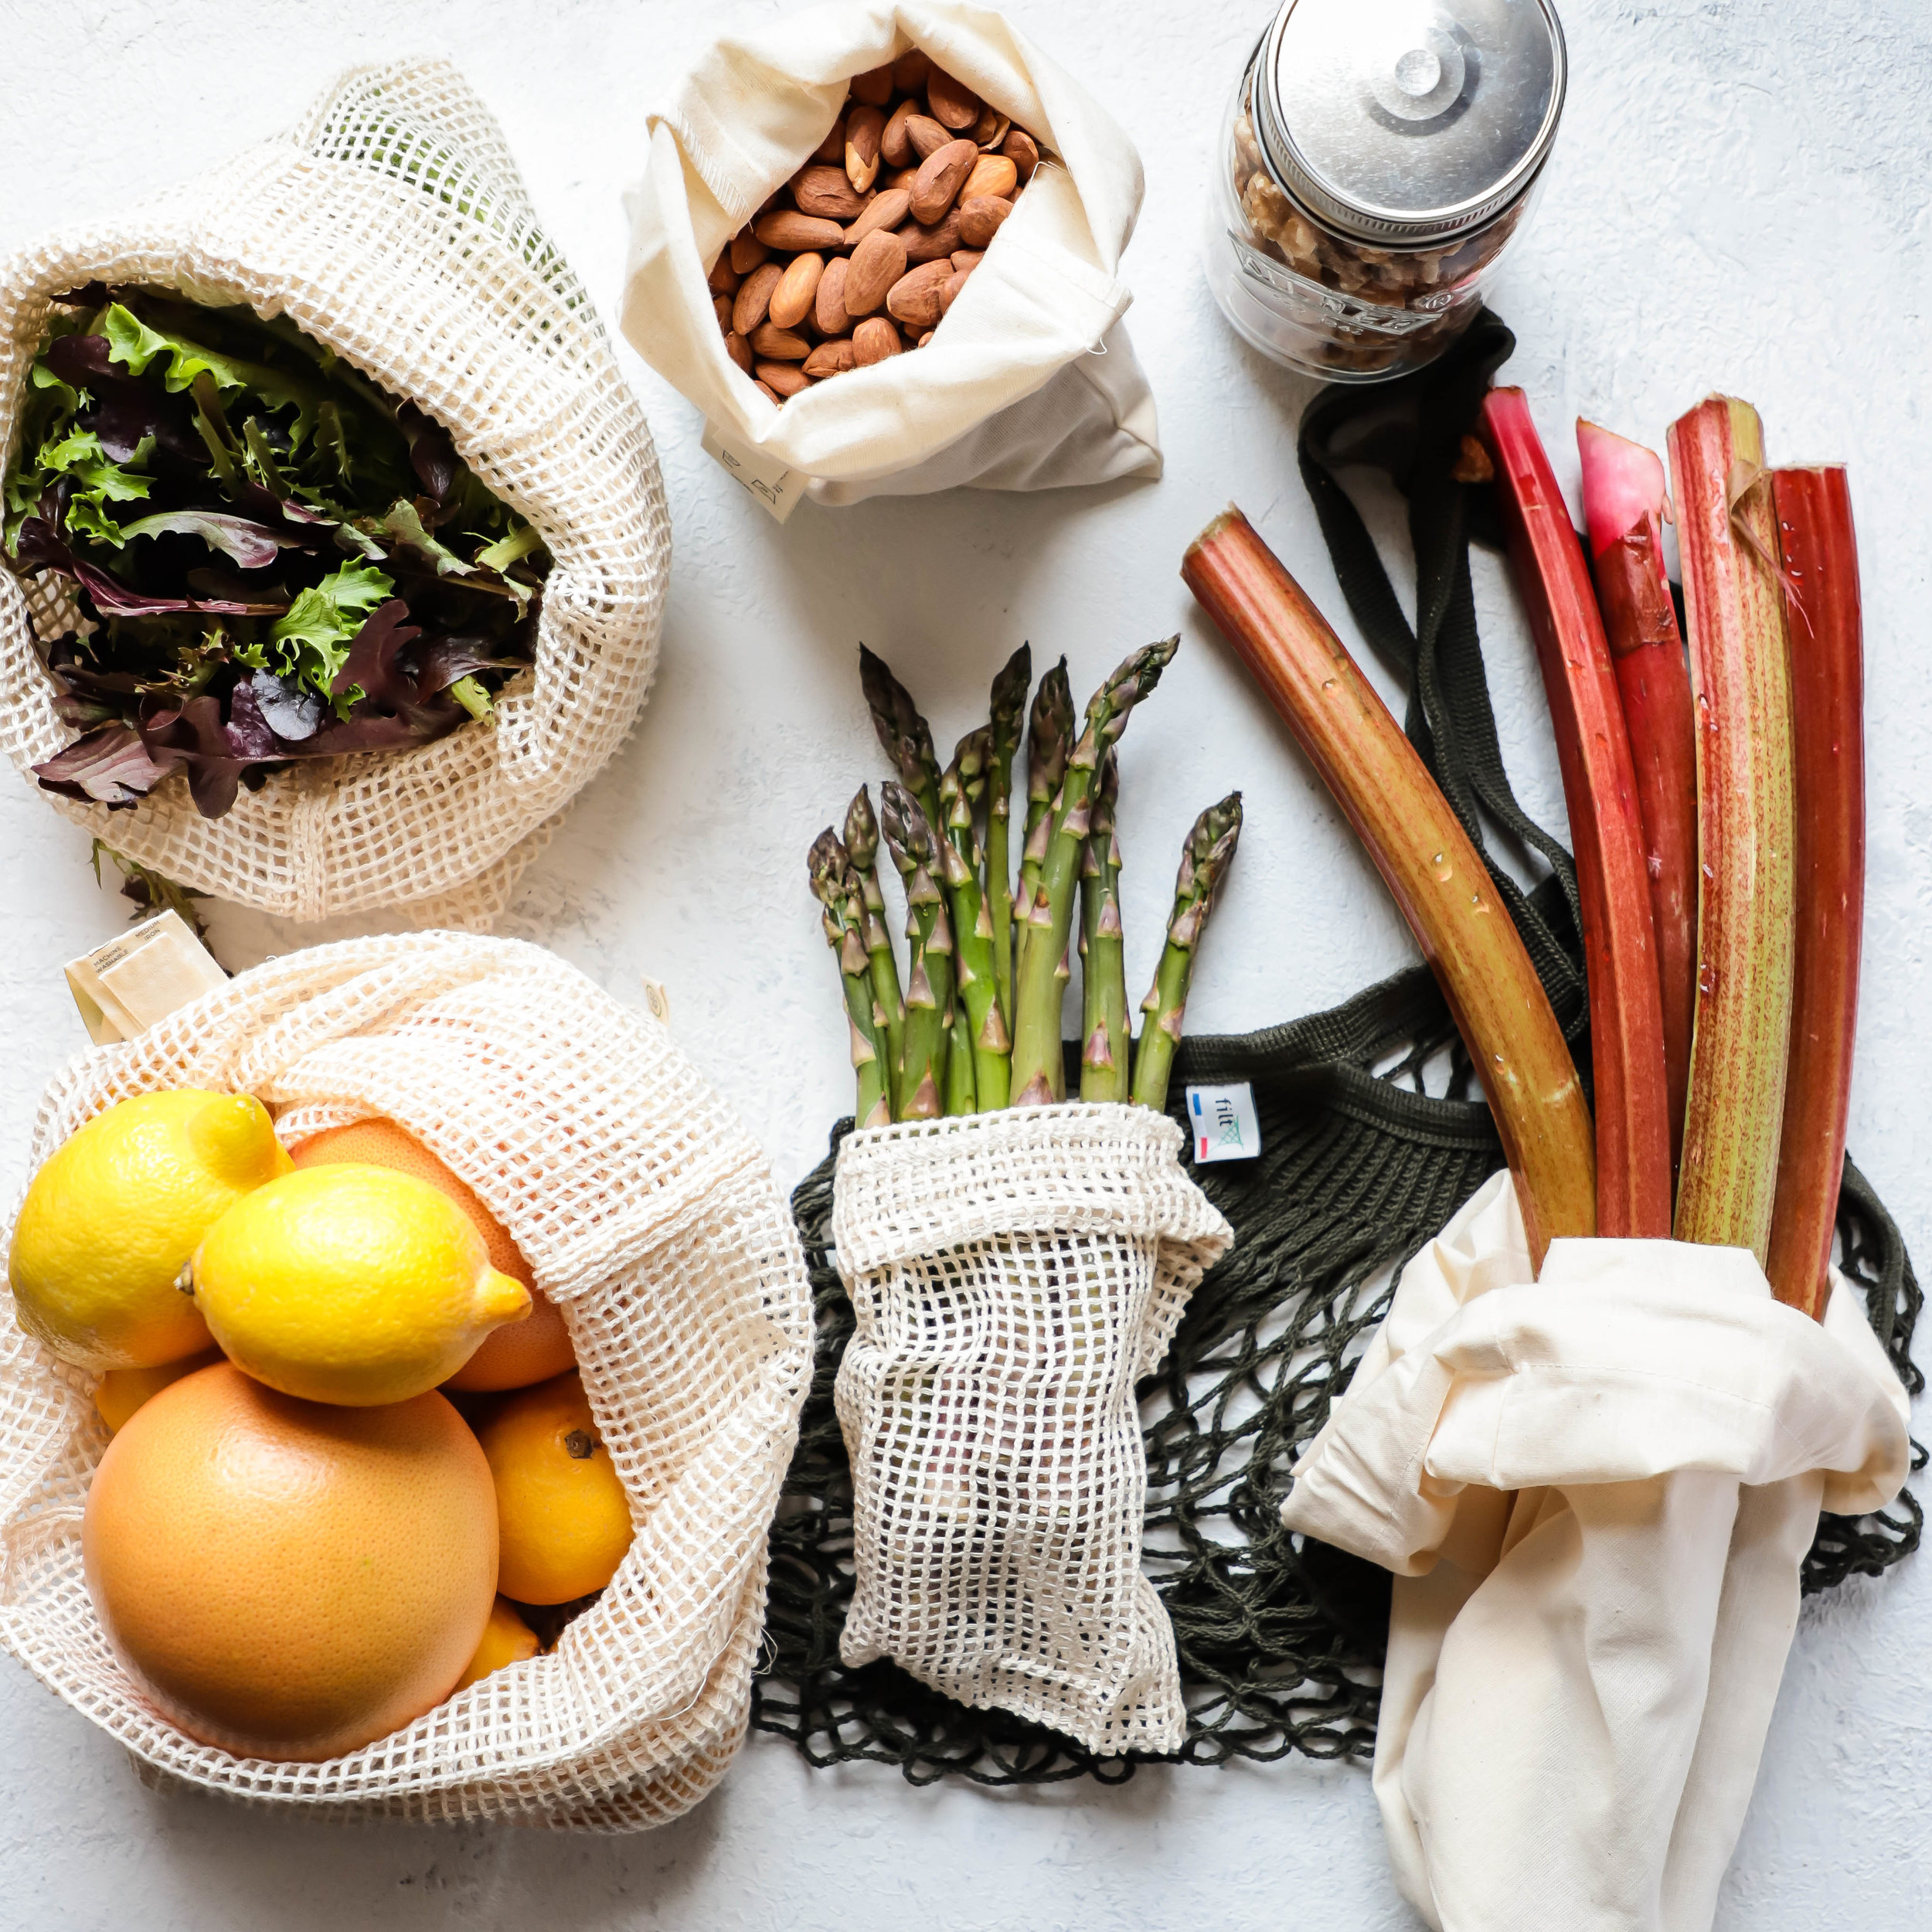 products to help reduce single-use plastic in food storage